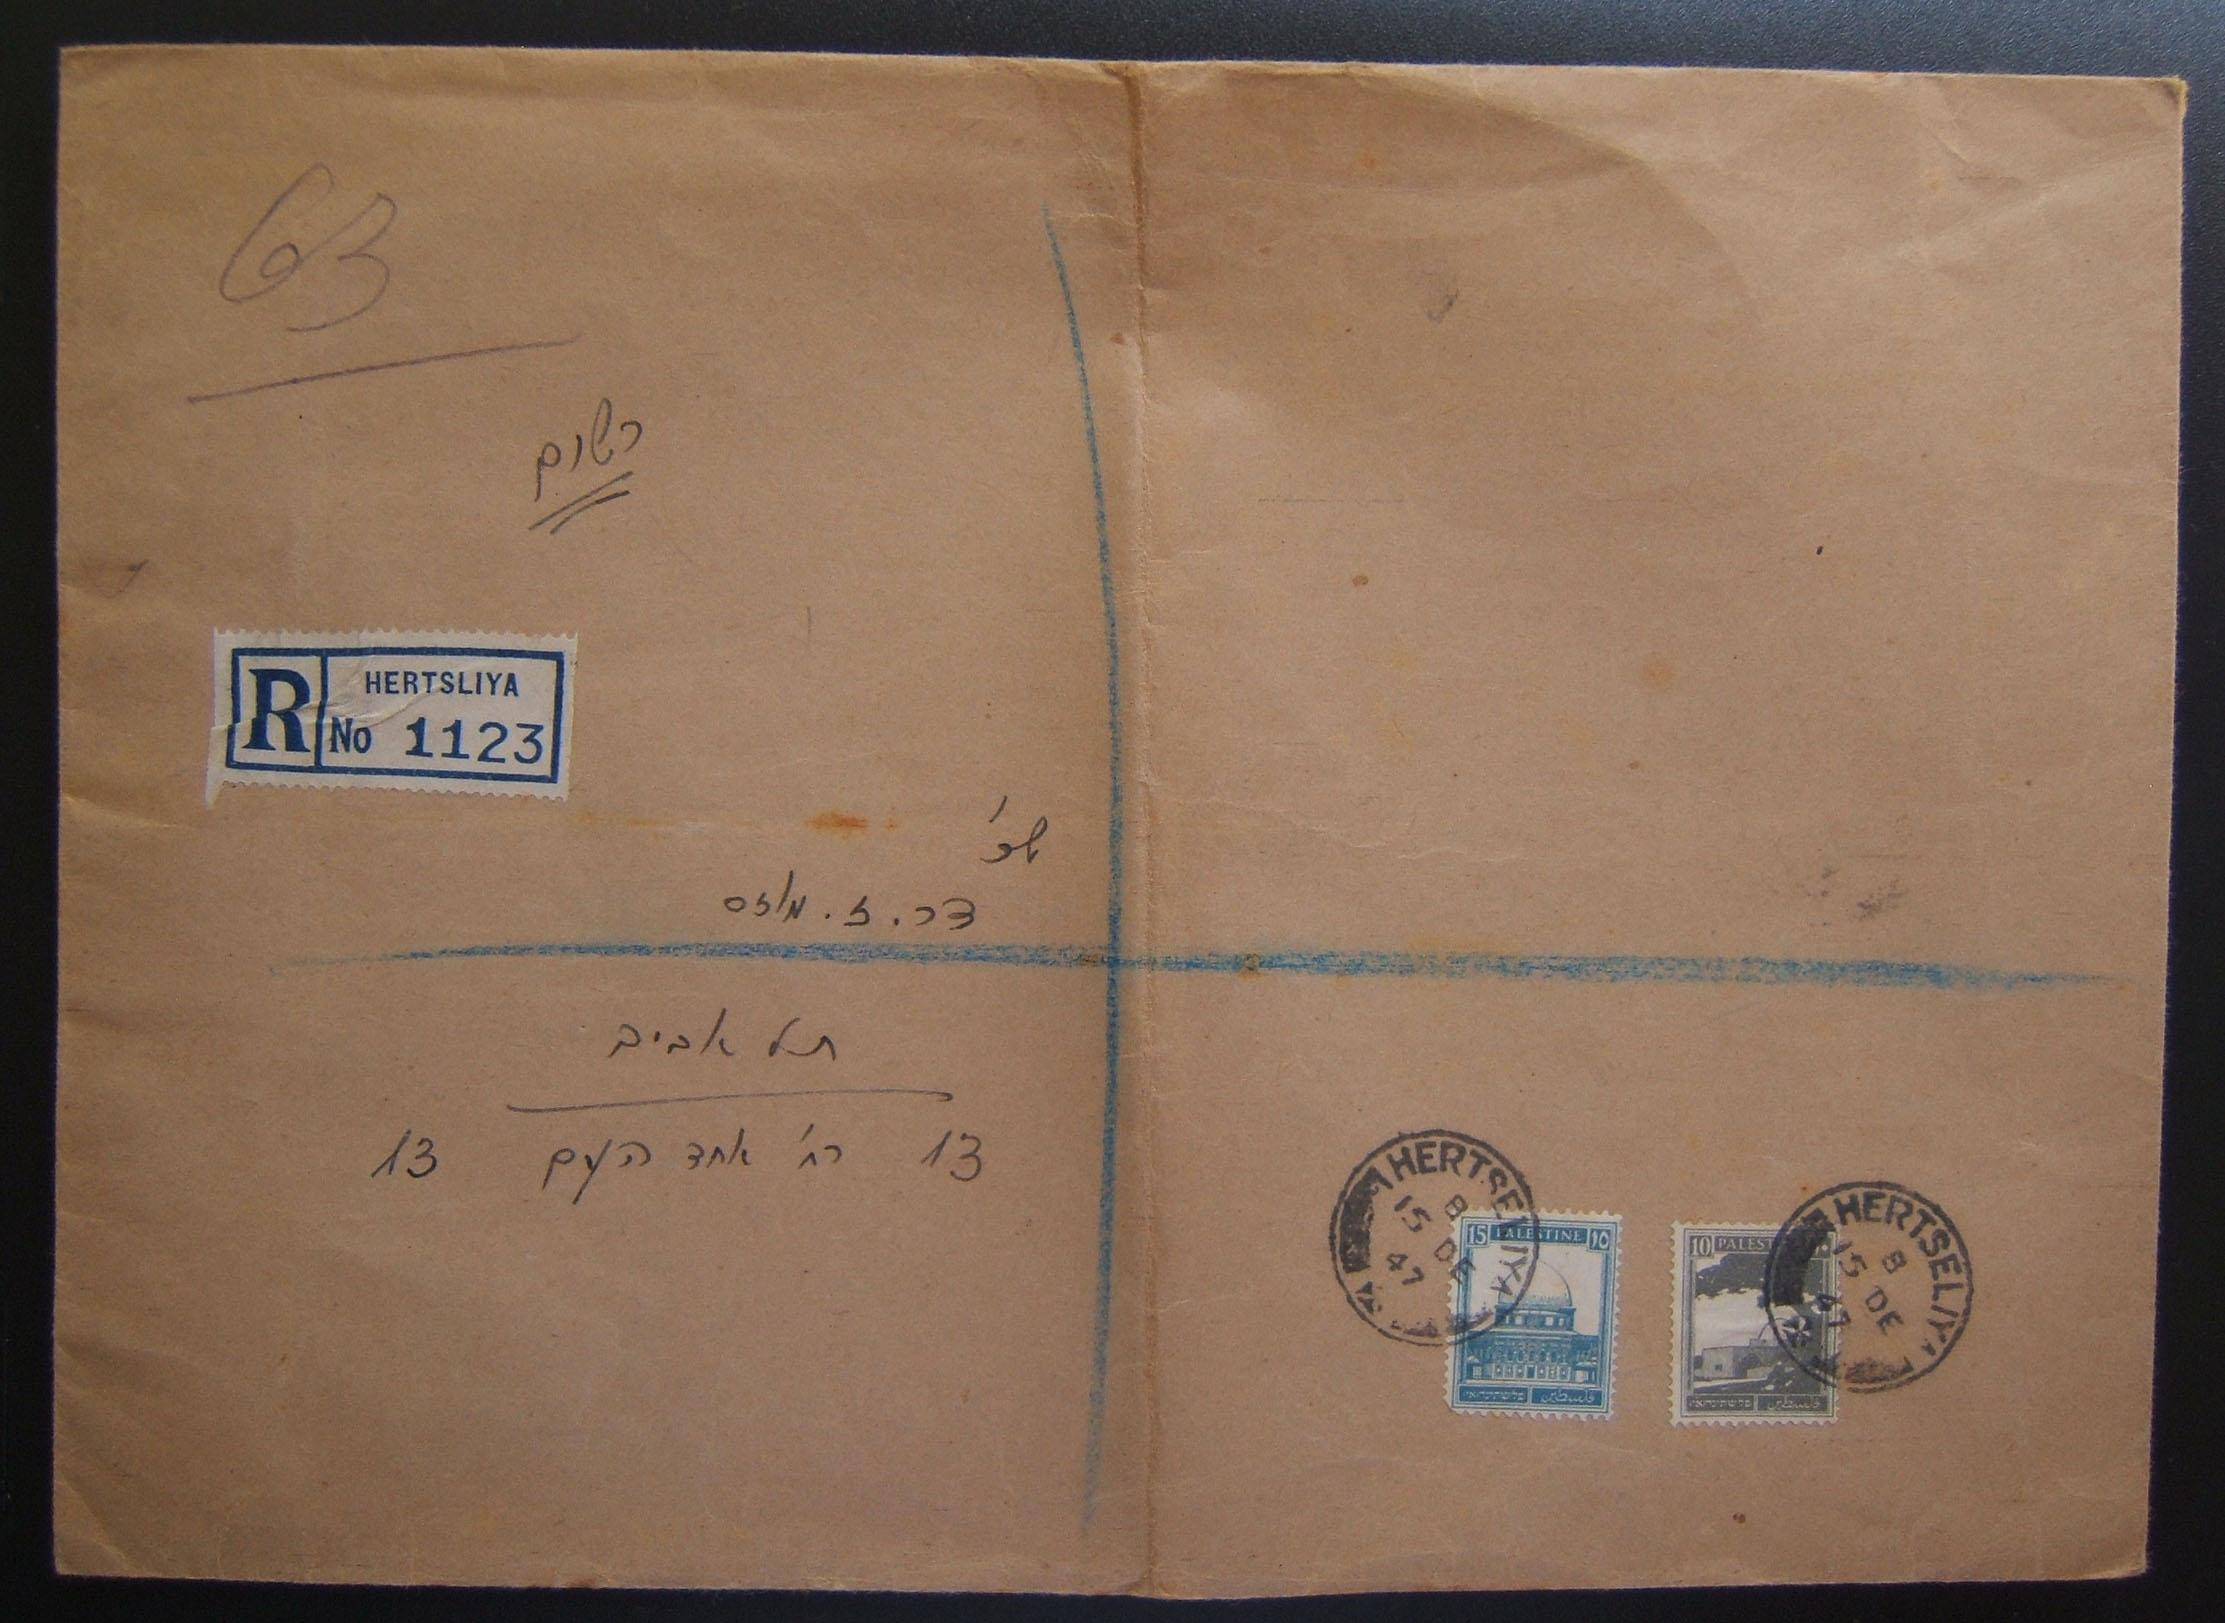 1947 Mandatory mail: 15 DE 47 large size comm reg envelope ex HERTSLIYA to TLV franked 25m per period rate (10m letter + 15m reg fee) using 15m + 10m Pictorals Ba 97/108 tied by lo